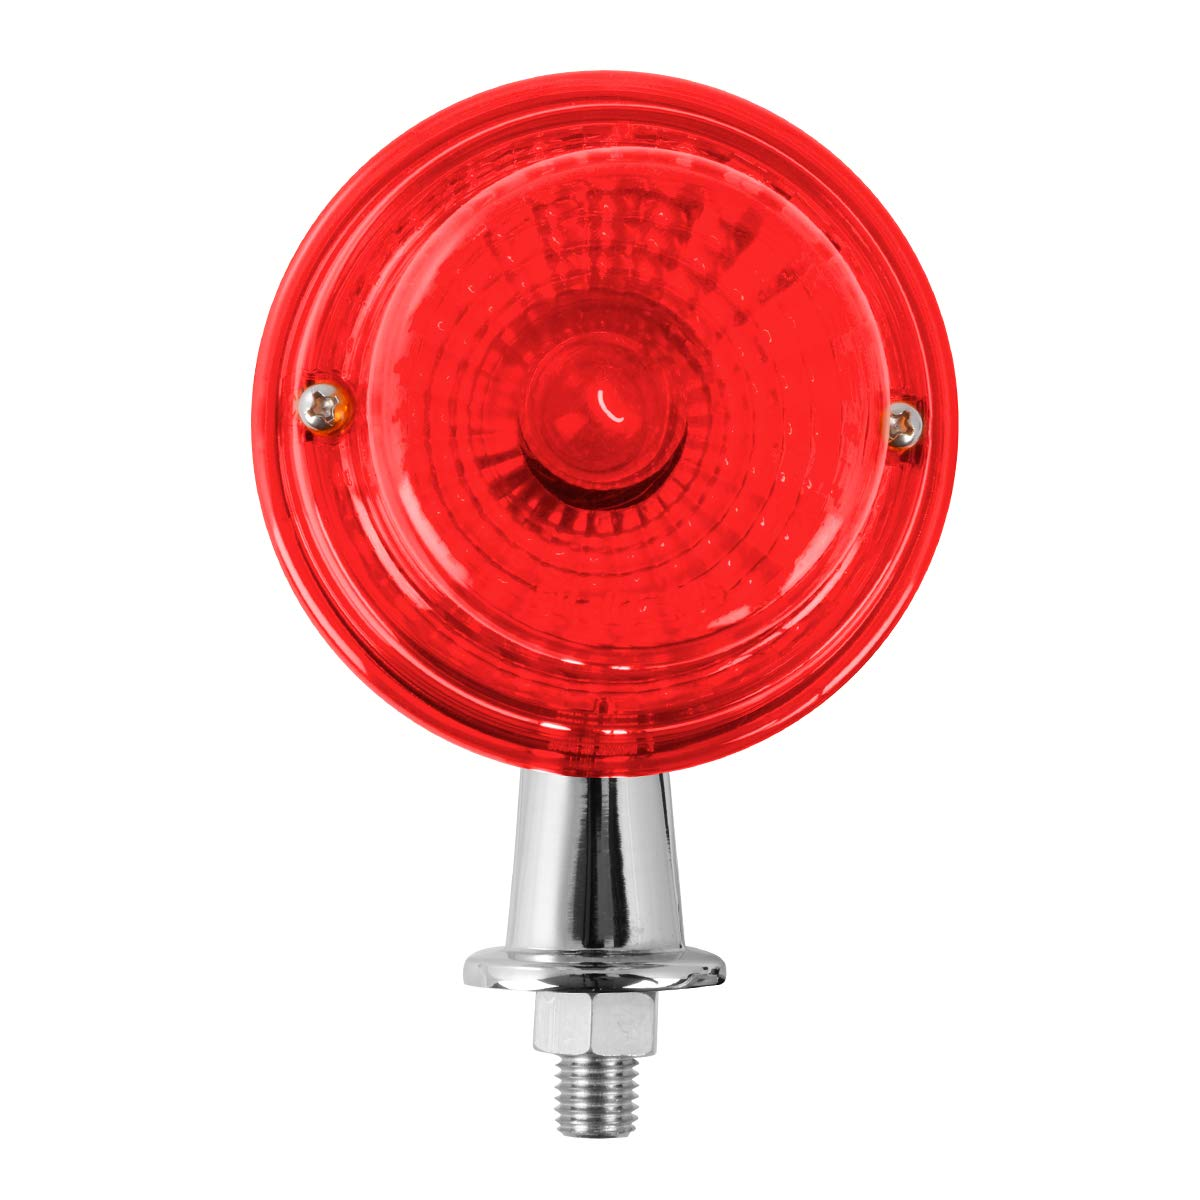 1-1//8 Spyder Red, 1 Wire Grand General 78695 Tanker Light